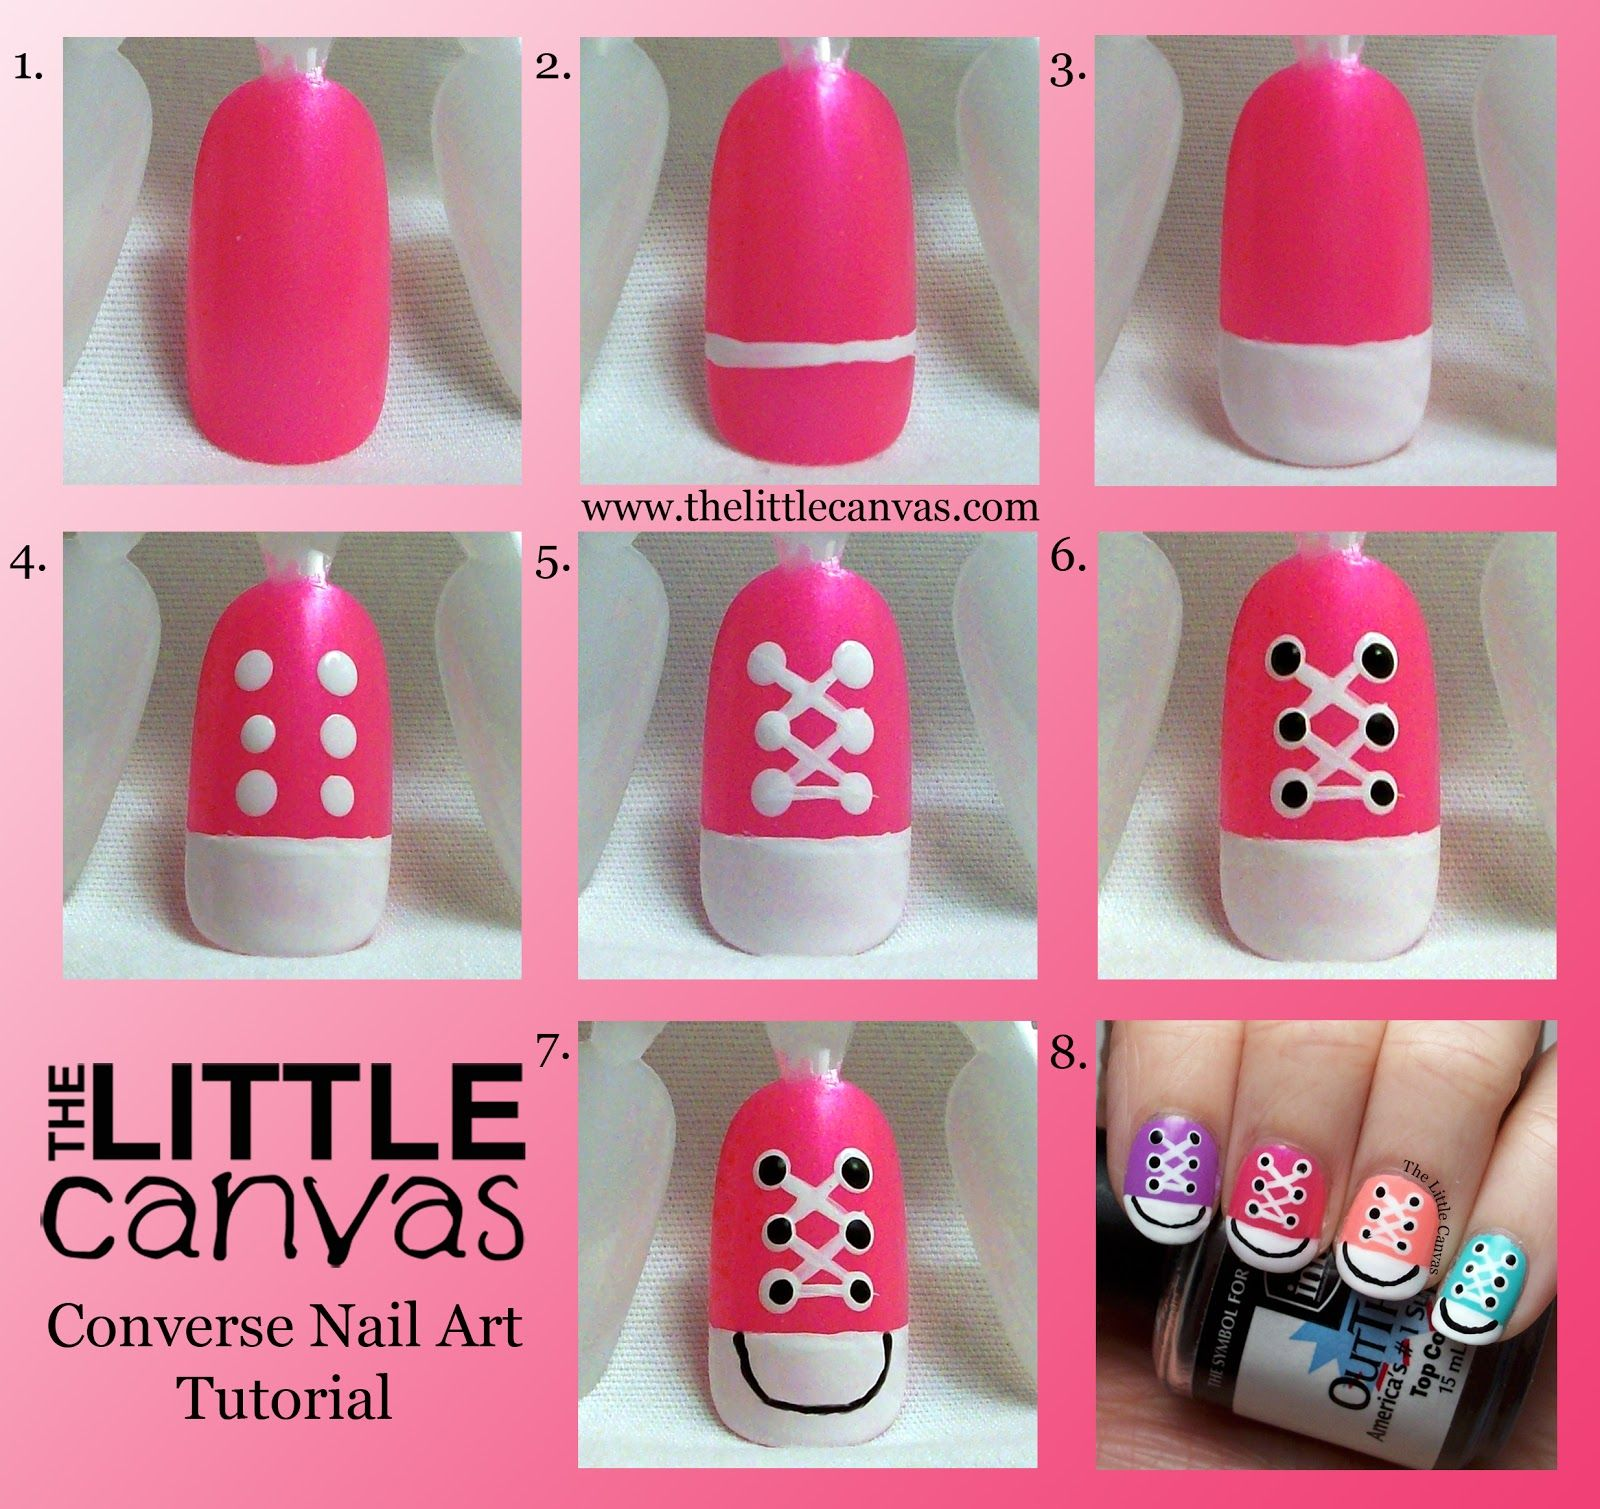 the little canvas converse nail art take 2 tutorial